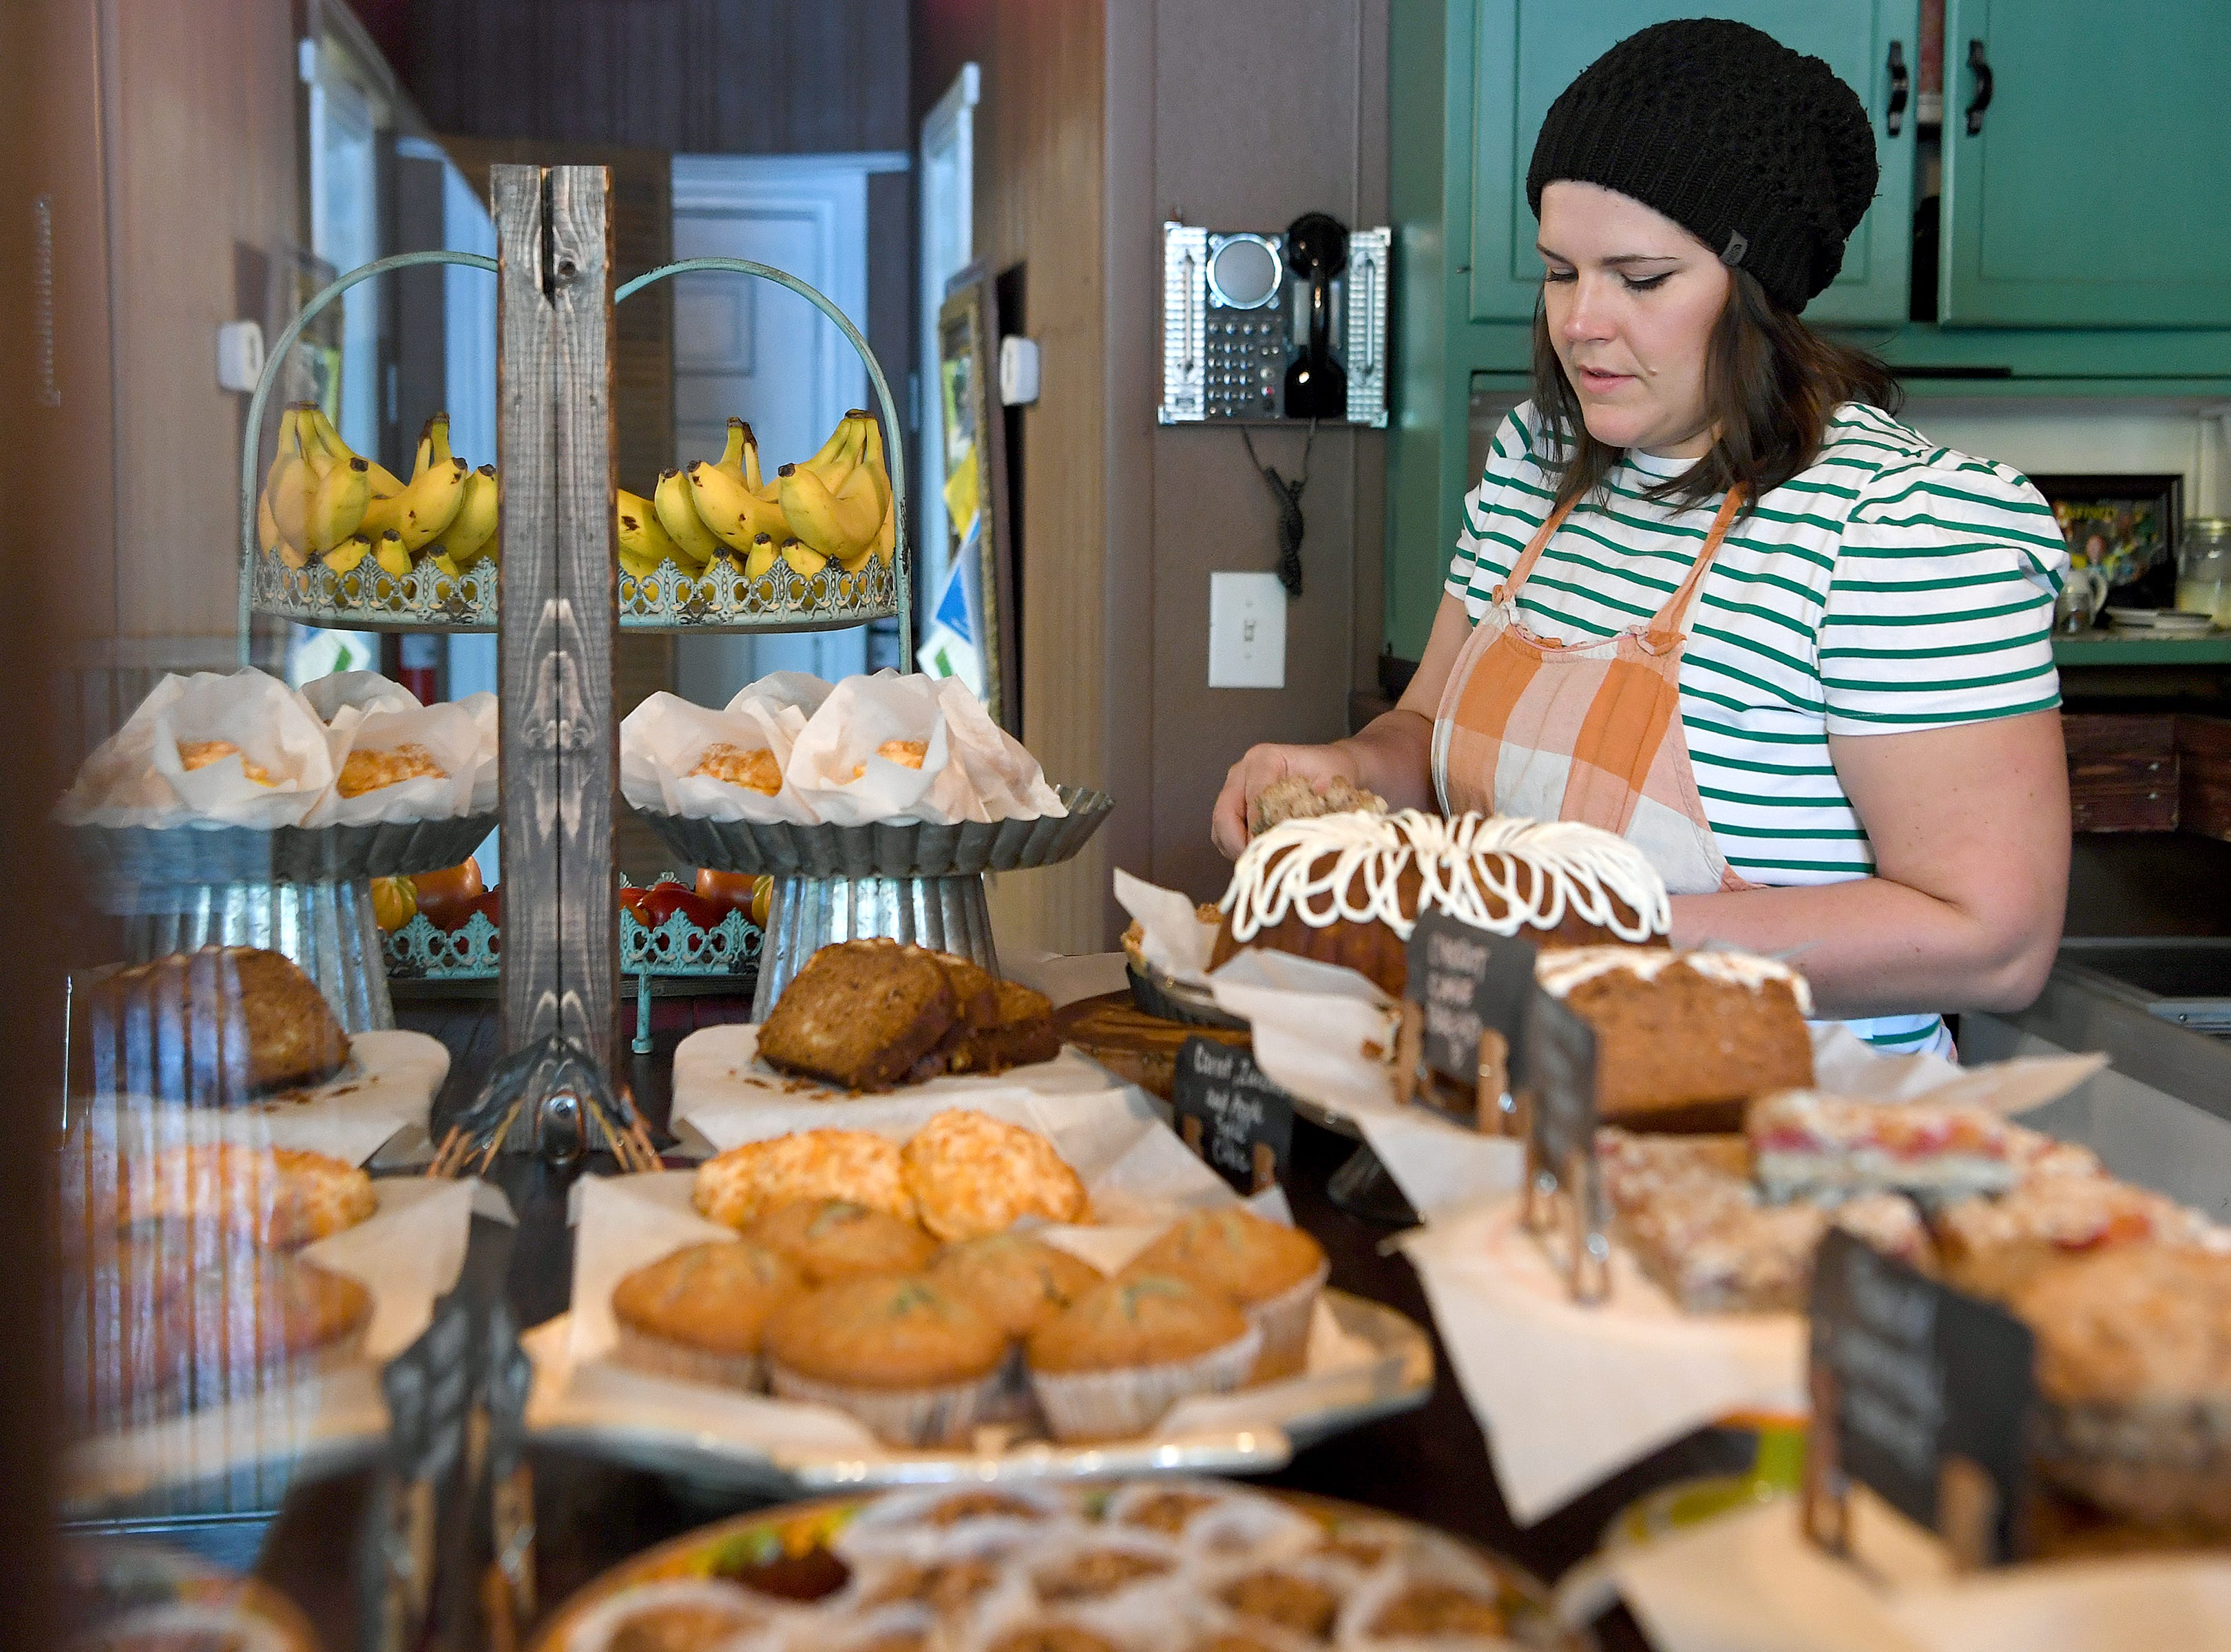 Barista Rachael Petty cuts a slice of cake for a customer at the Beehive Coffee Bar in Arden on Sept. 19, 2018. She bakes the shop's offerings fresh daily.